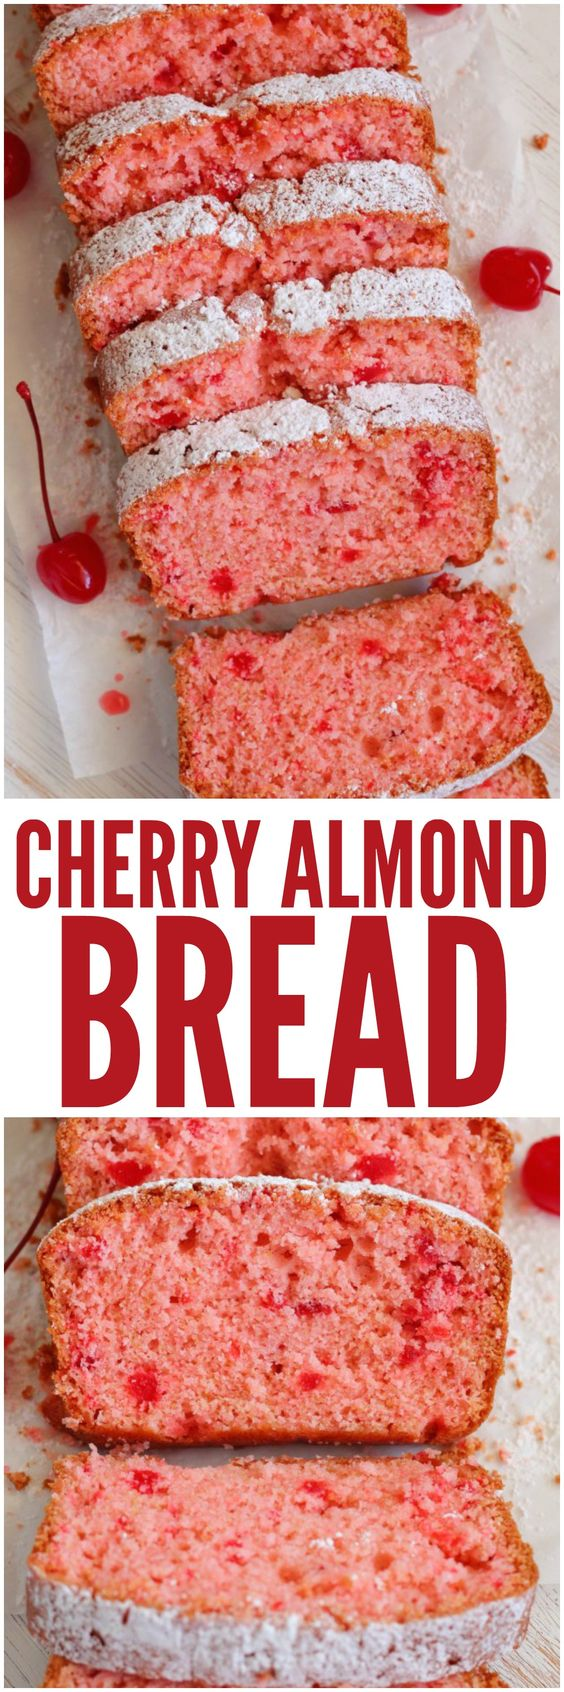 Cherry Almond Bread Recipe via The Recipe Critic - this is so quick and easy to make and perfectly moist! The cherry almond flavor is incredible and you won't be able to get enough! #dessertbreads #neighborgifts #homemadegifts #foodgifts #breadrecipes #flavoredbreads #sweetbreads #holidaybread #bread #homemadebread #simplebreadrecipes #simplebread #simplerecipes